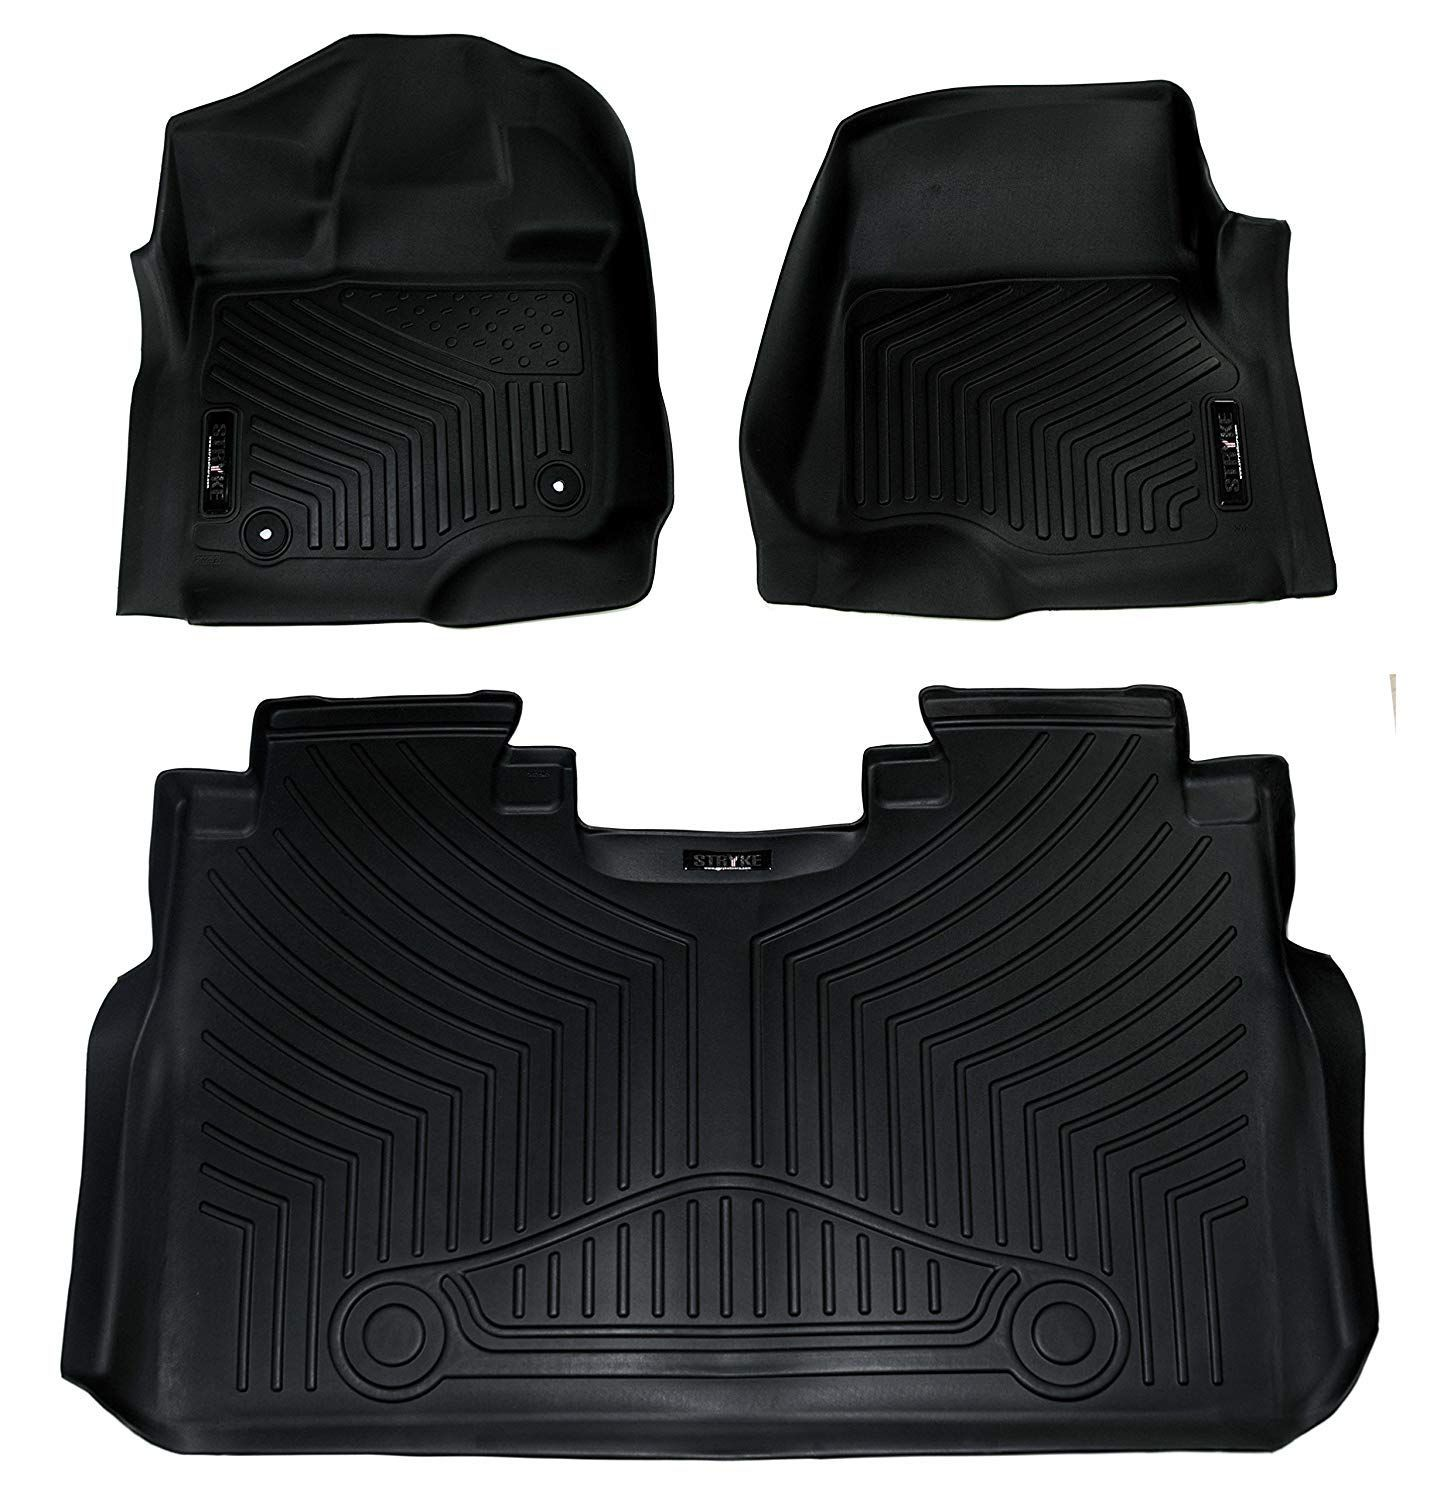 2015 2018 Ford F 150 Weathertech Floor Liners Full Set 1st Row Bucket Seating Includes 1st And 2nd Row Fits Sup Ford F150 Floor Liners Weather Tech